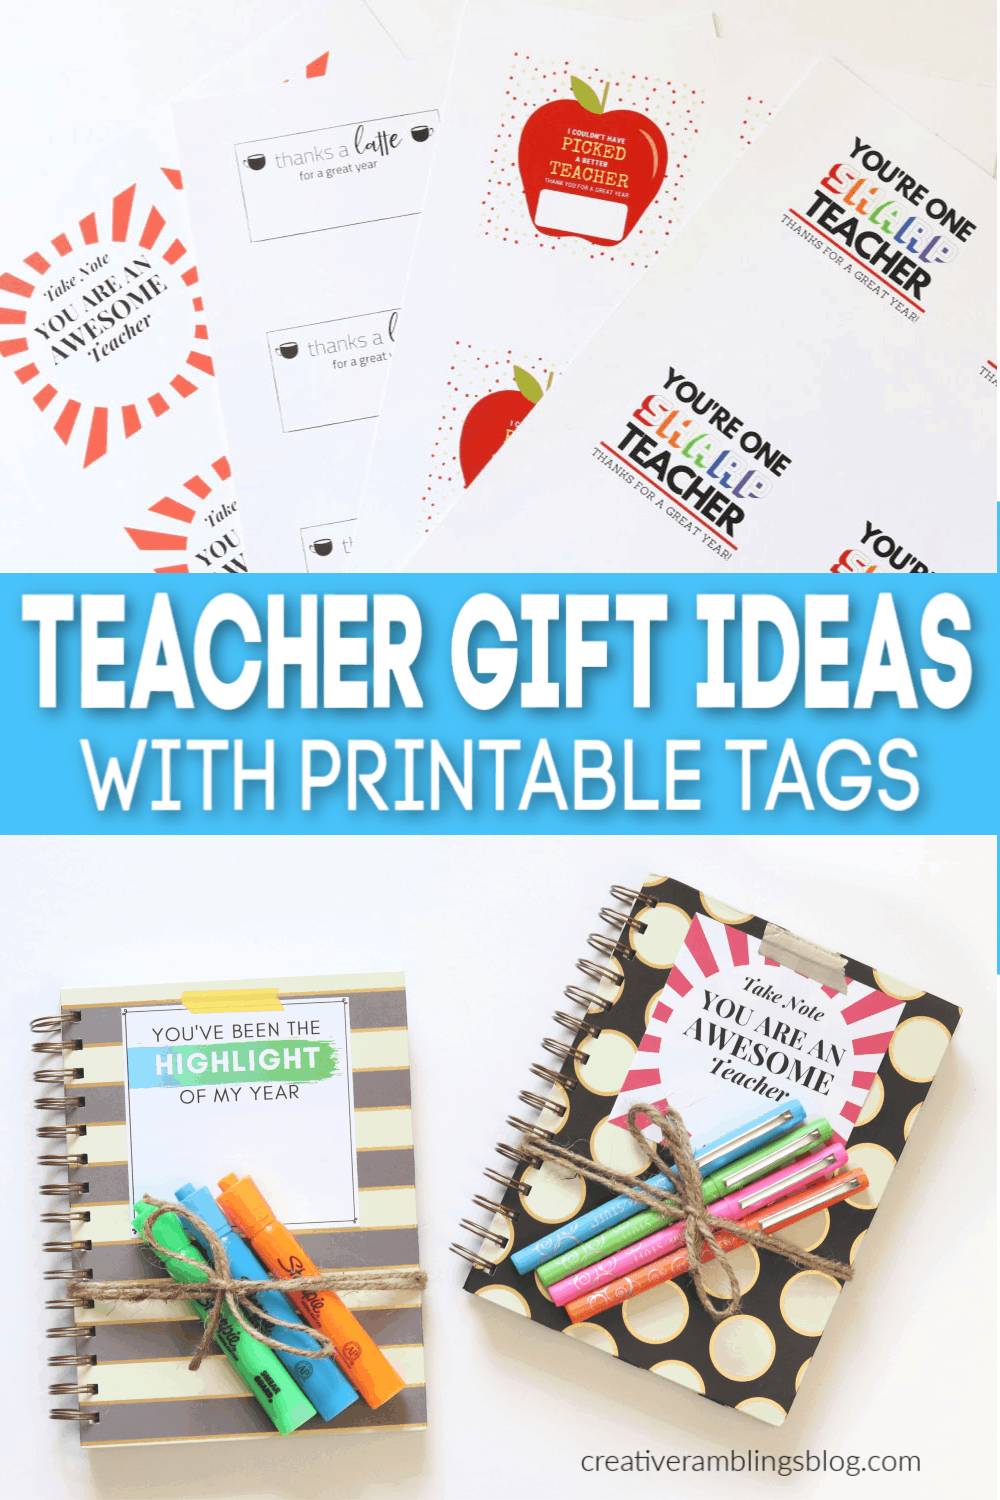 Printable gift tags and teacher gift ideas